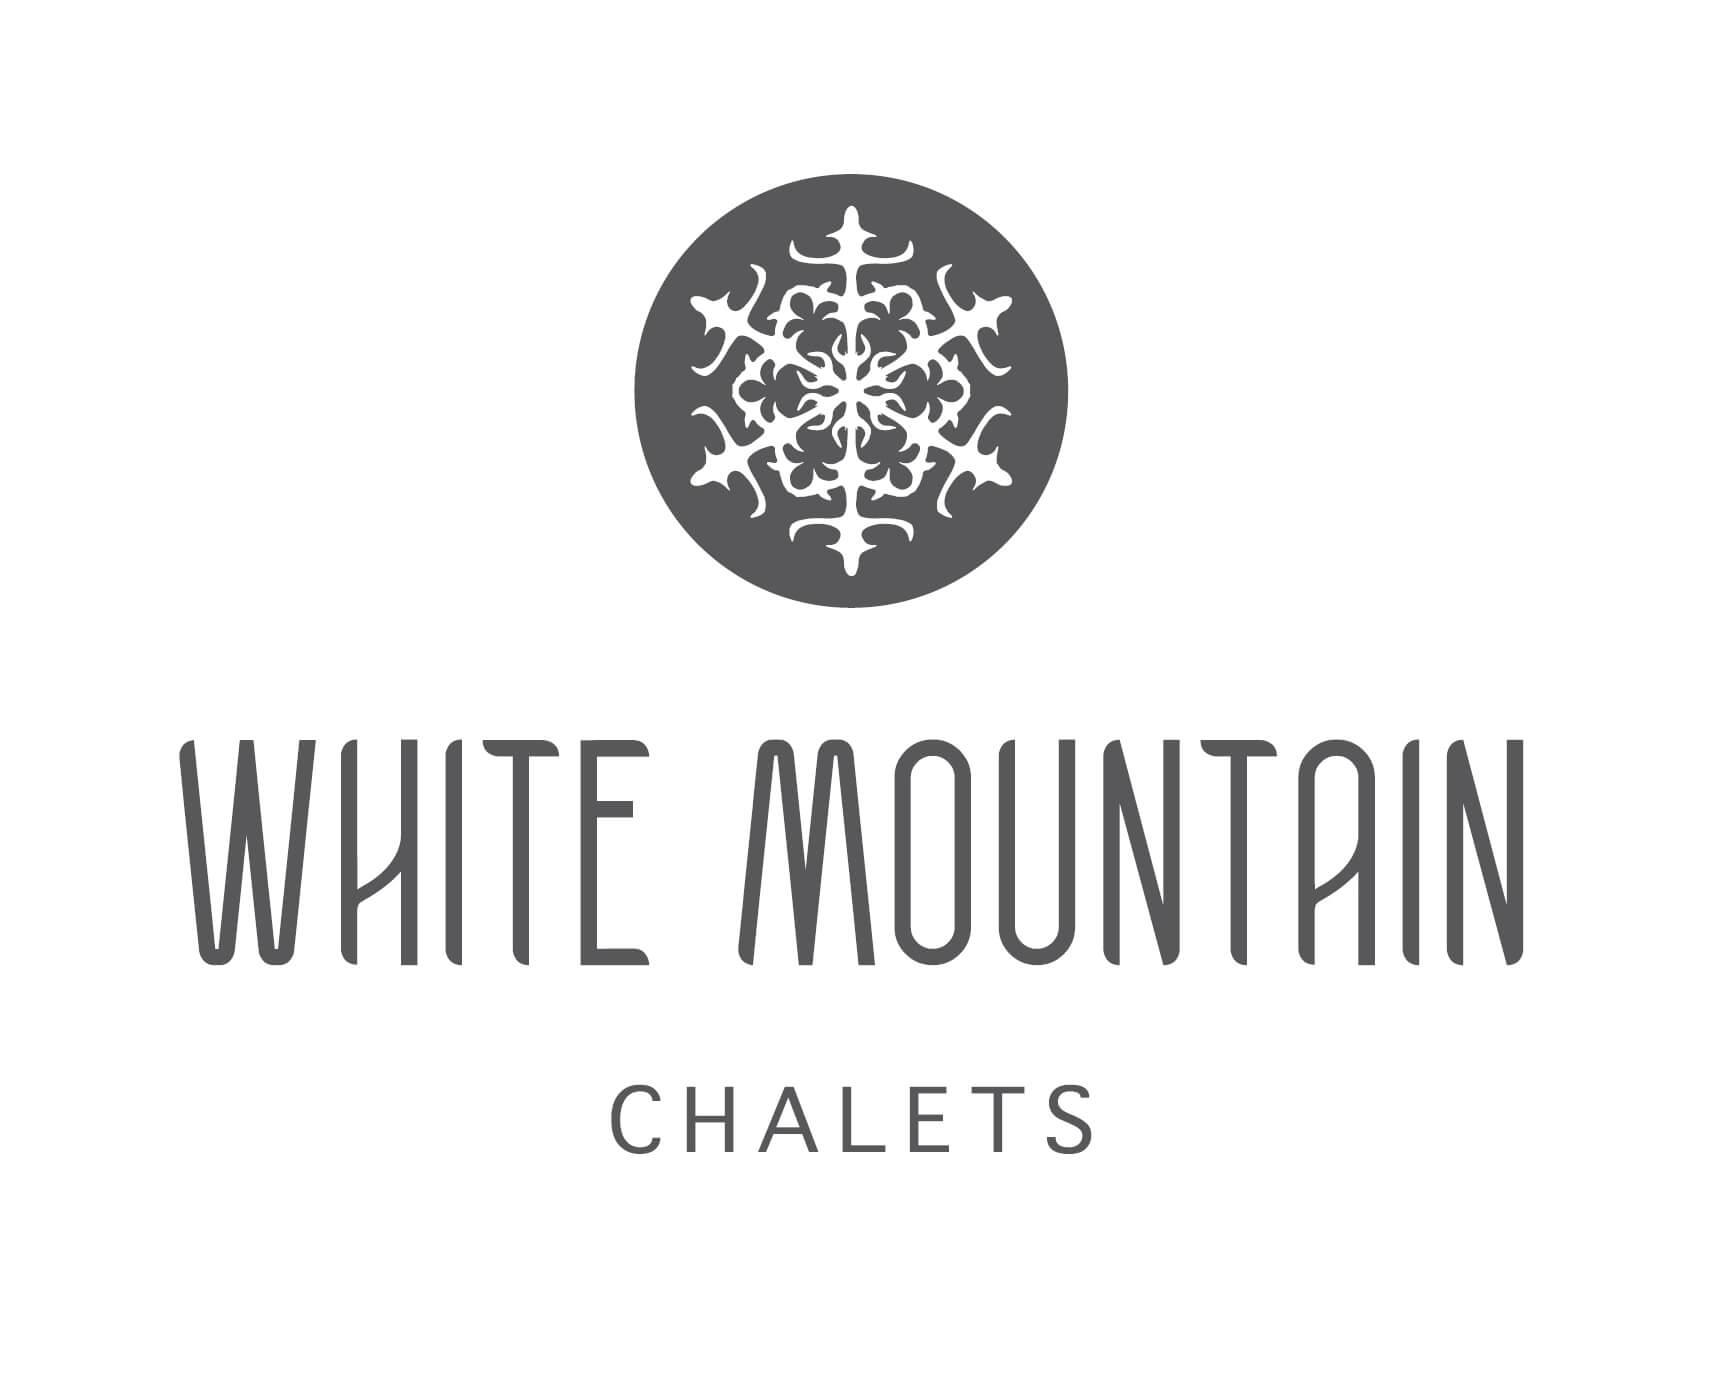 White Mountain Chalets